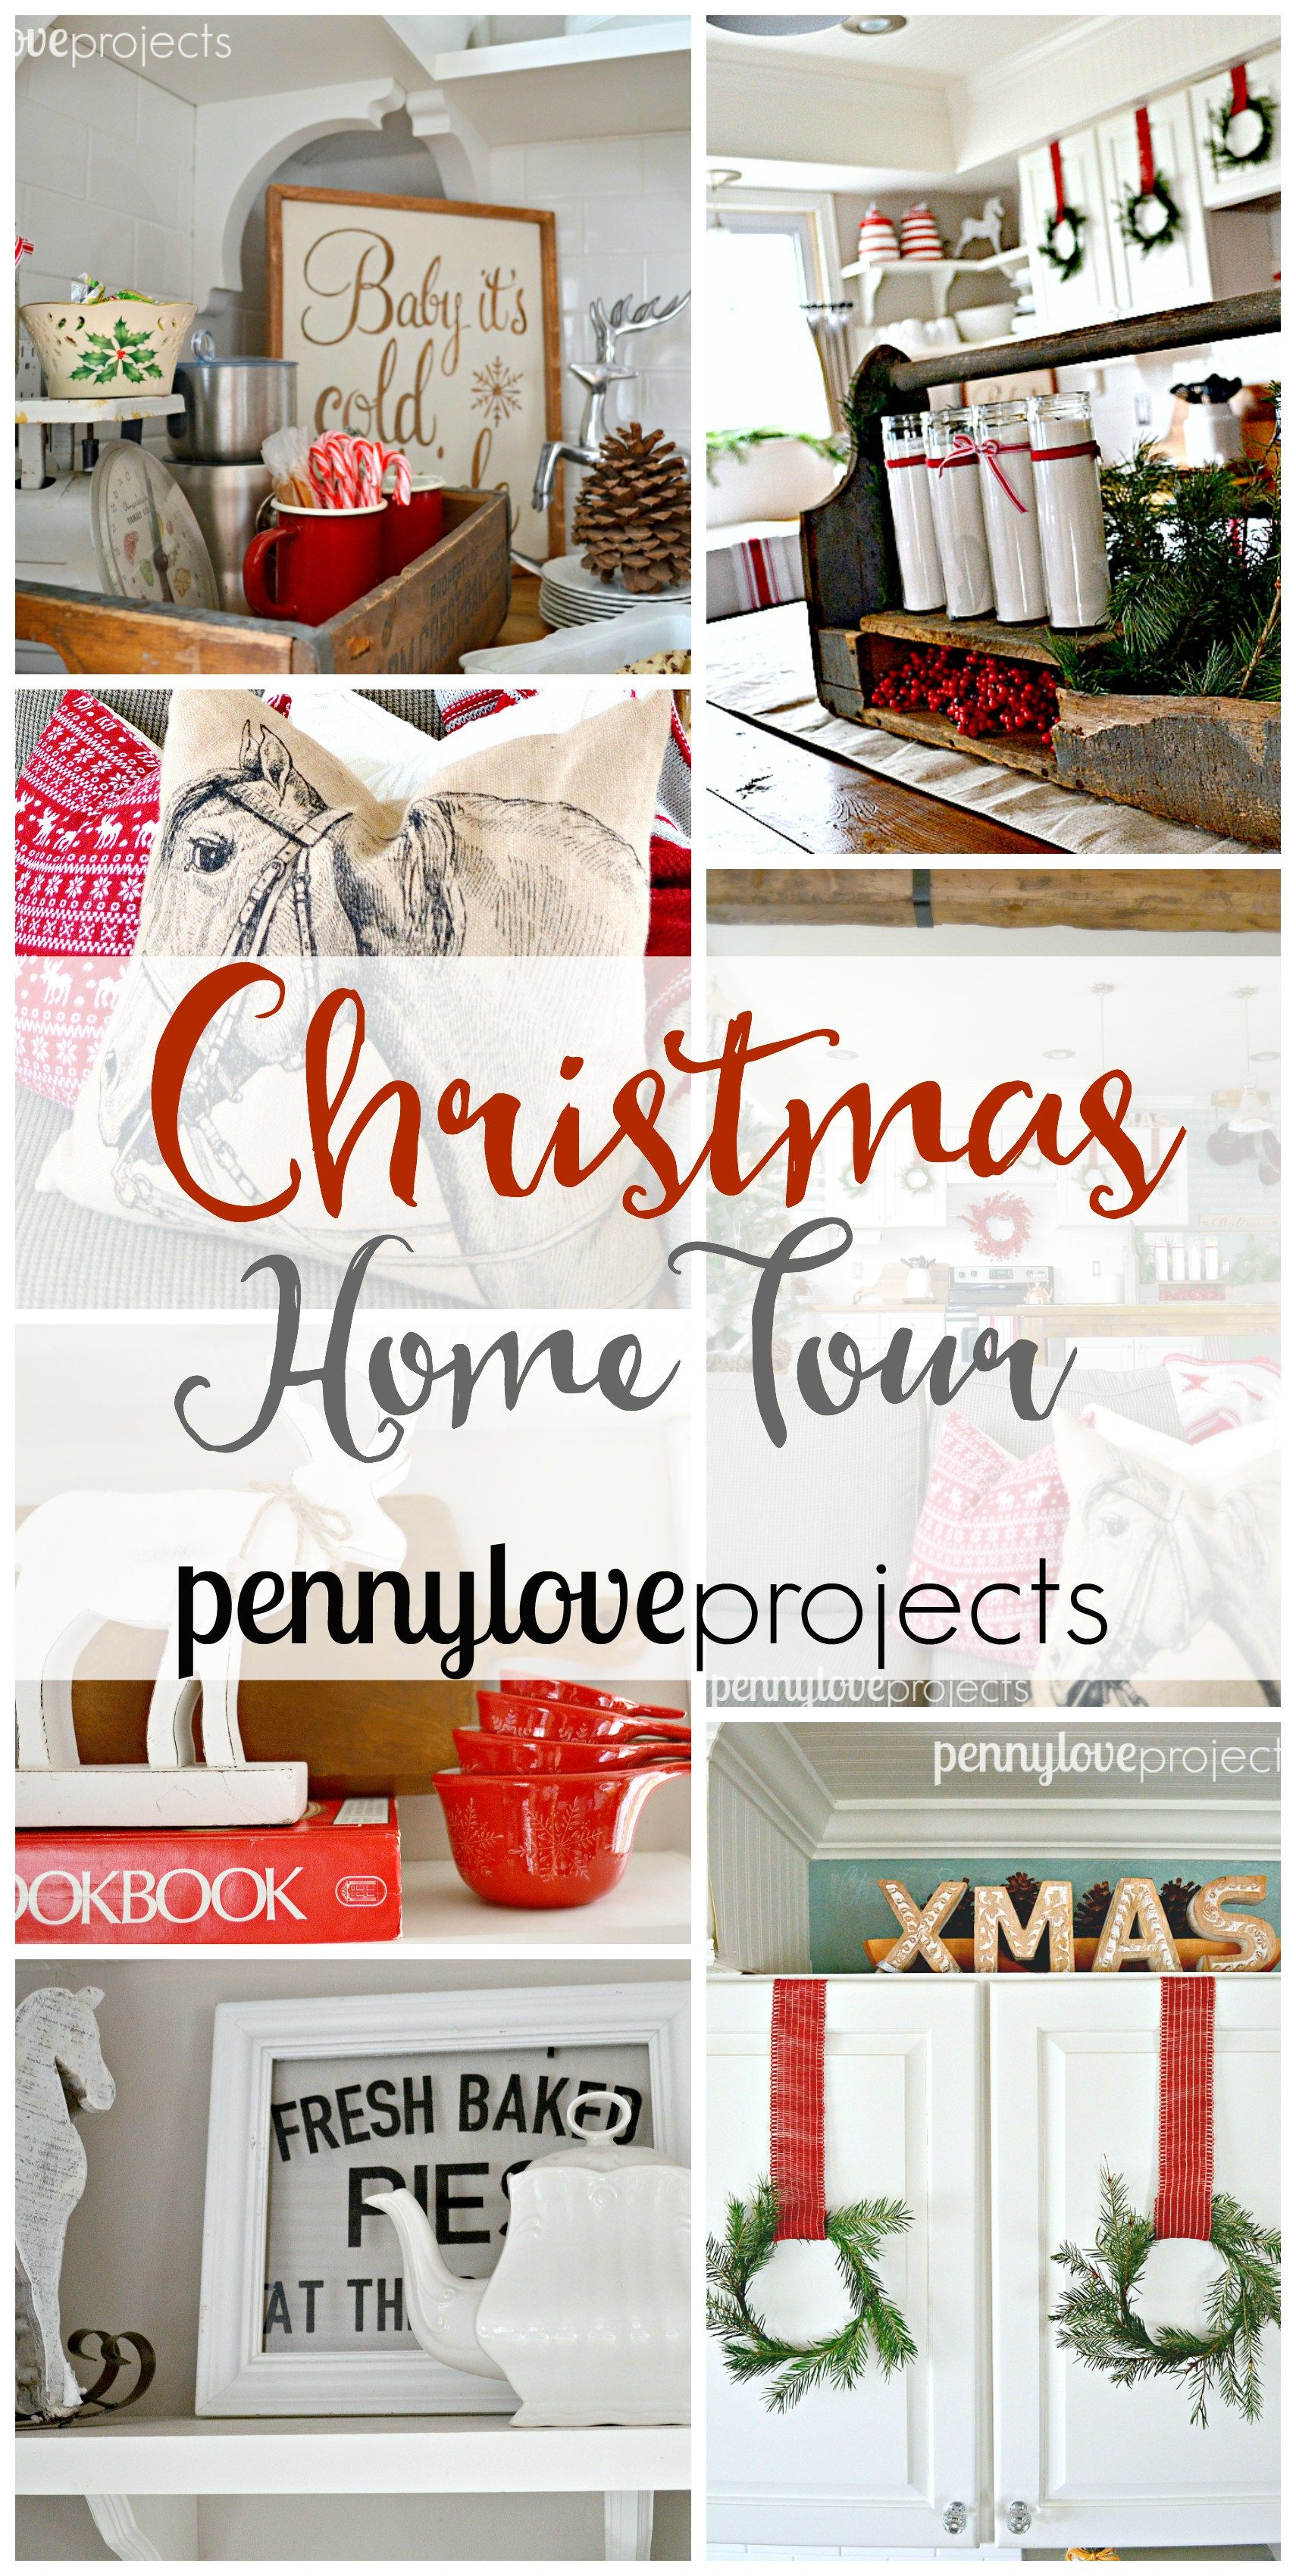 A Farmhouse Christmas Home Tour with pennyloveprojects e she